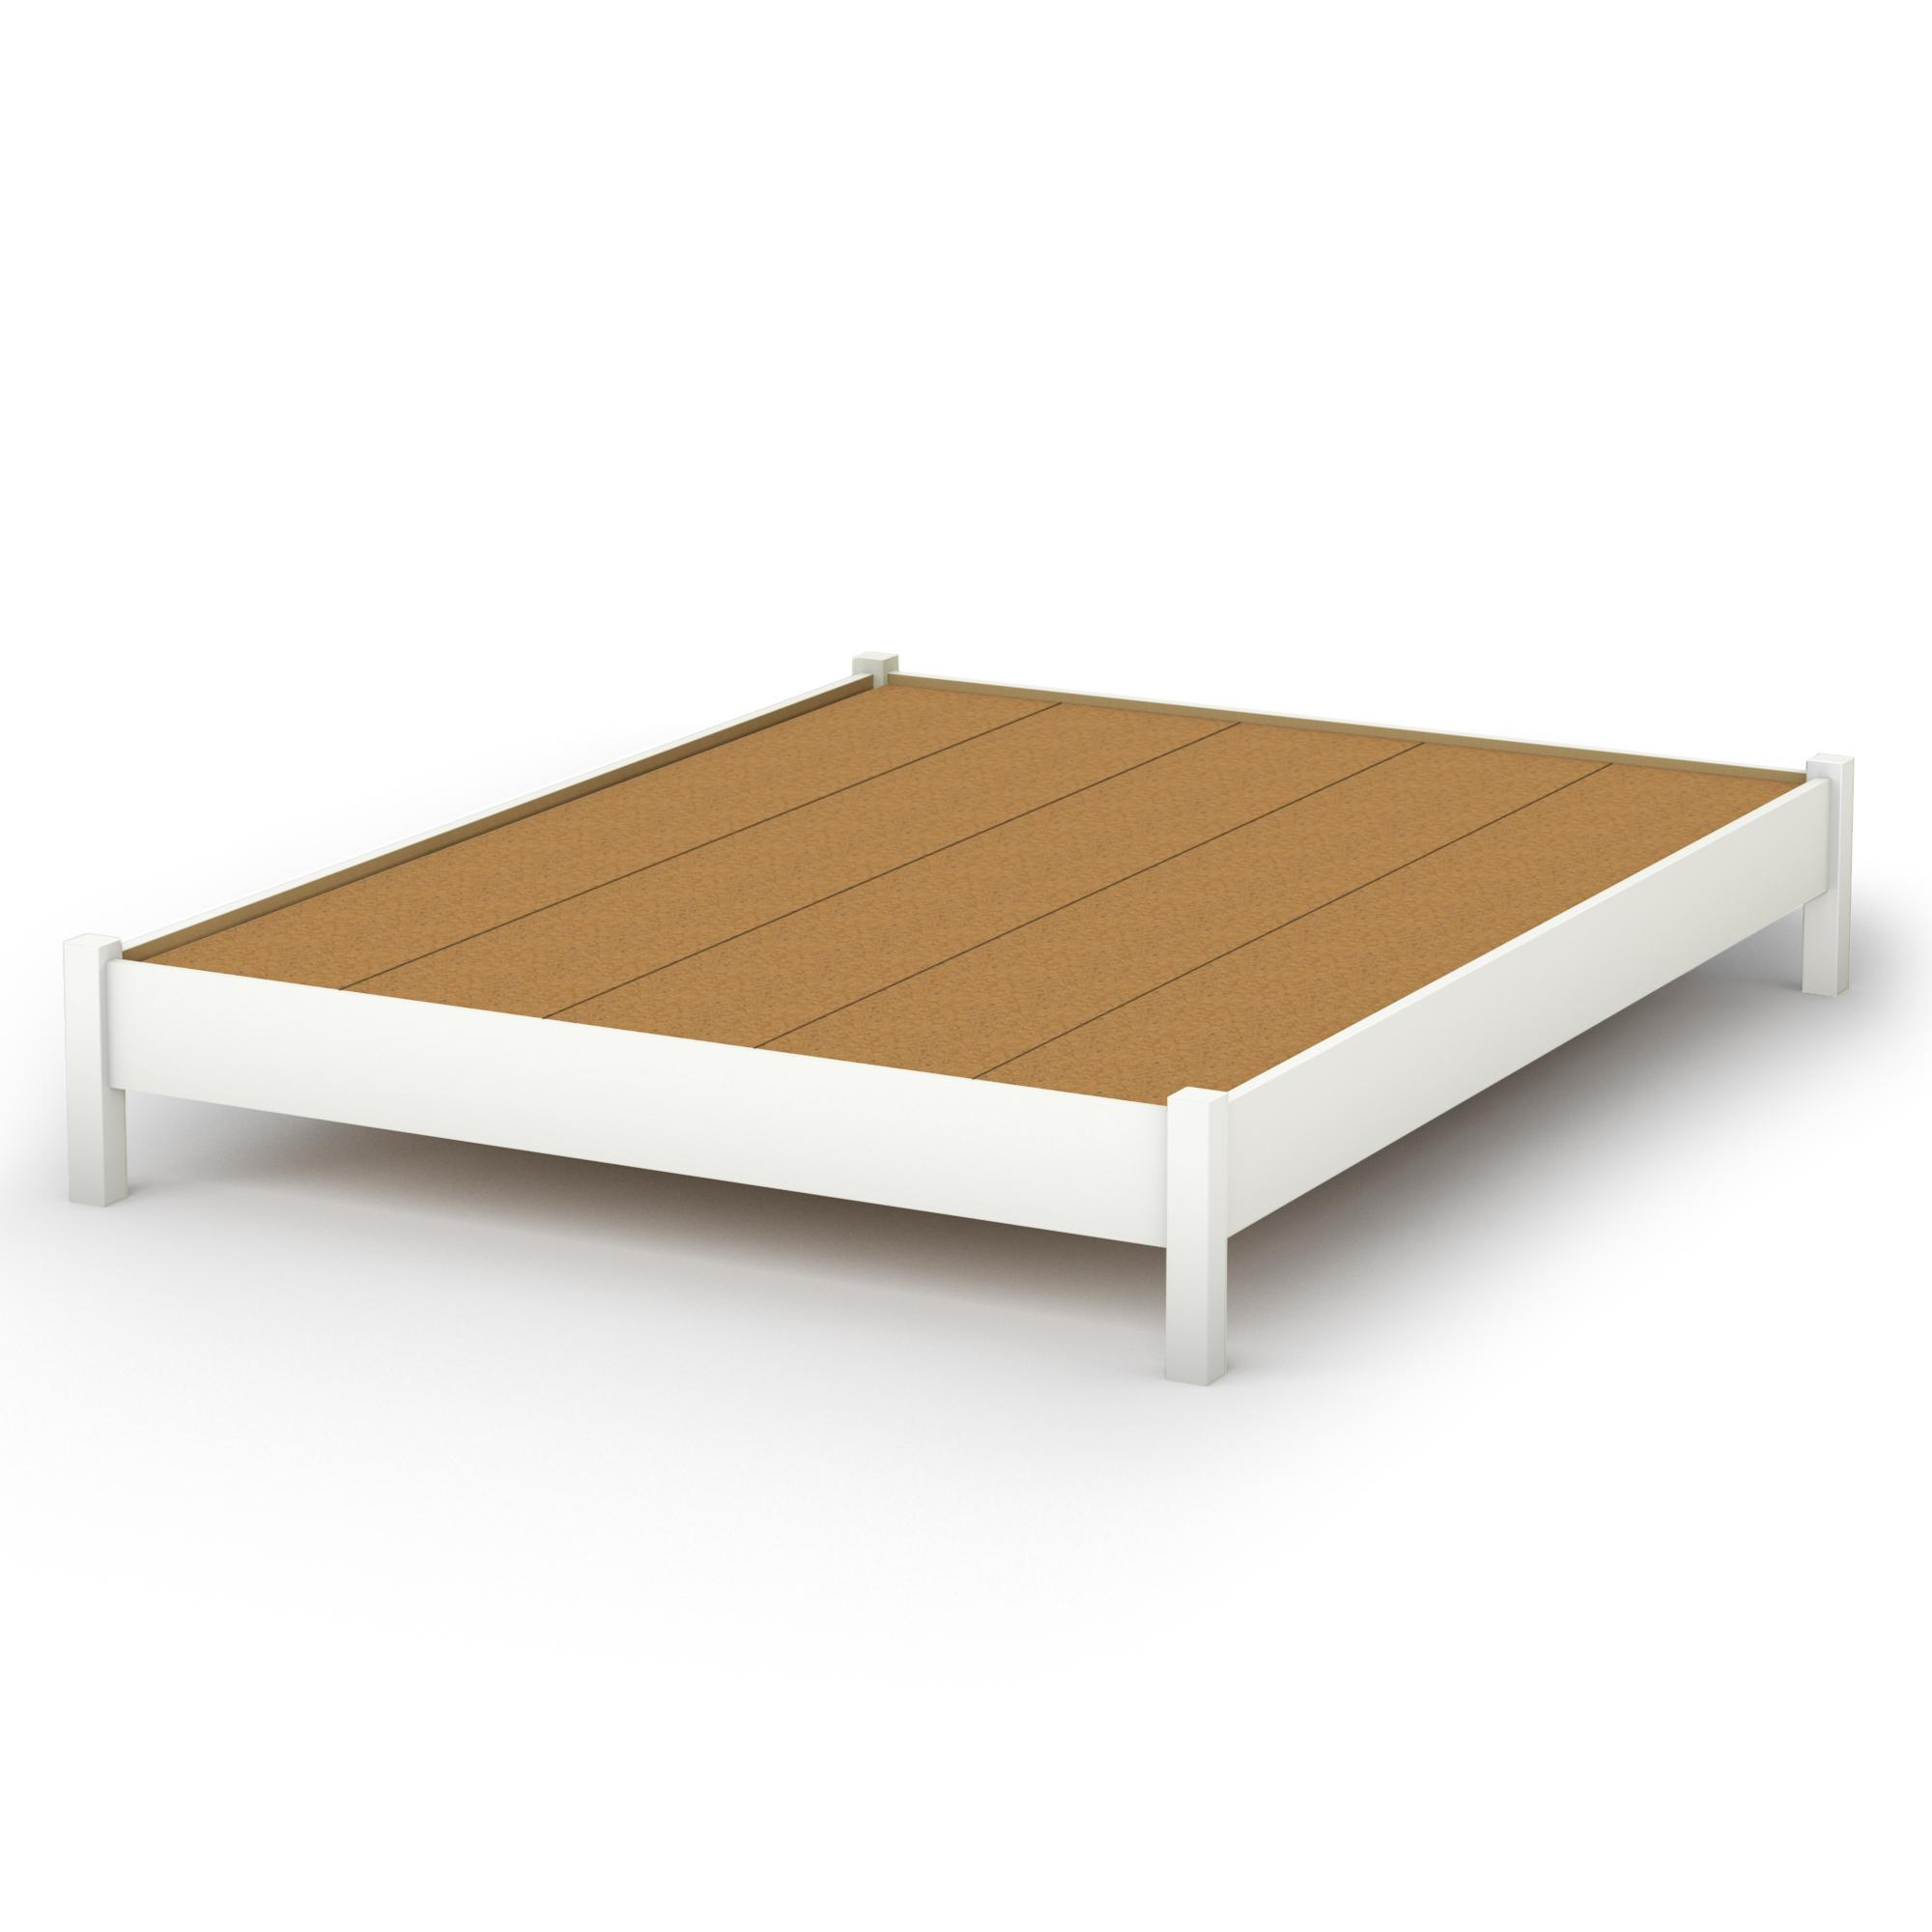 White Queen Platform Bed Frame 2000 x 2000